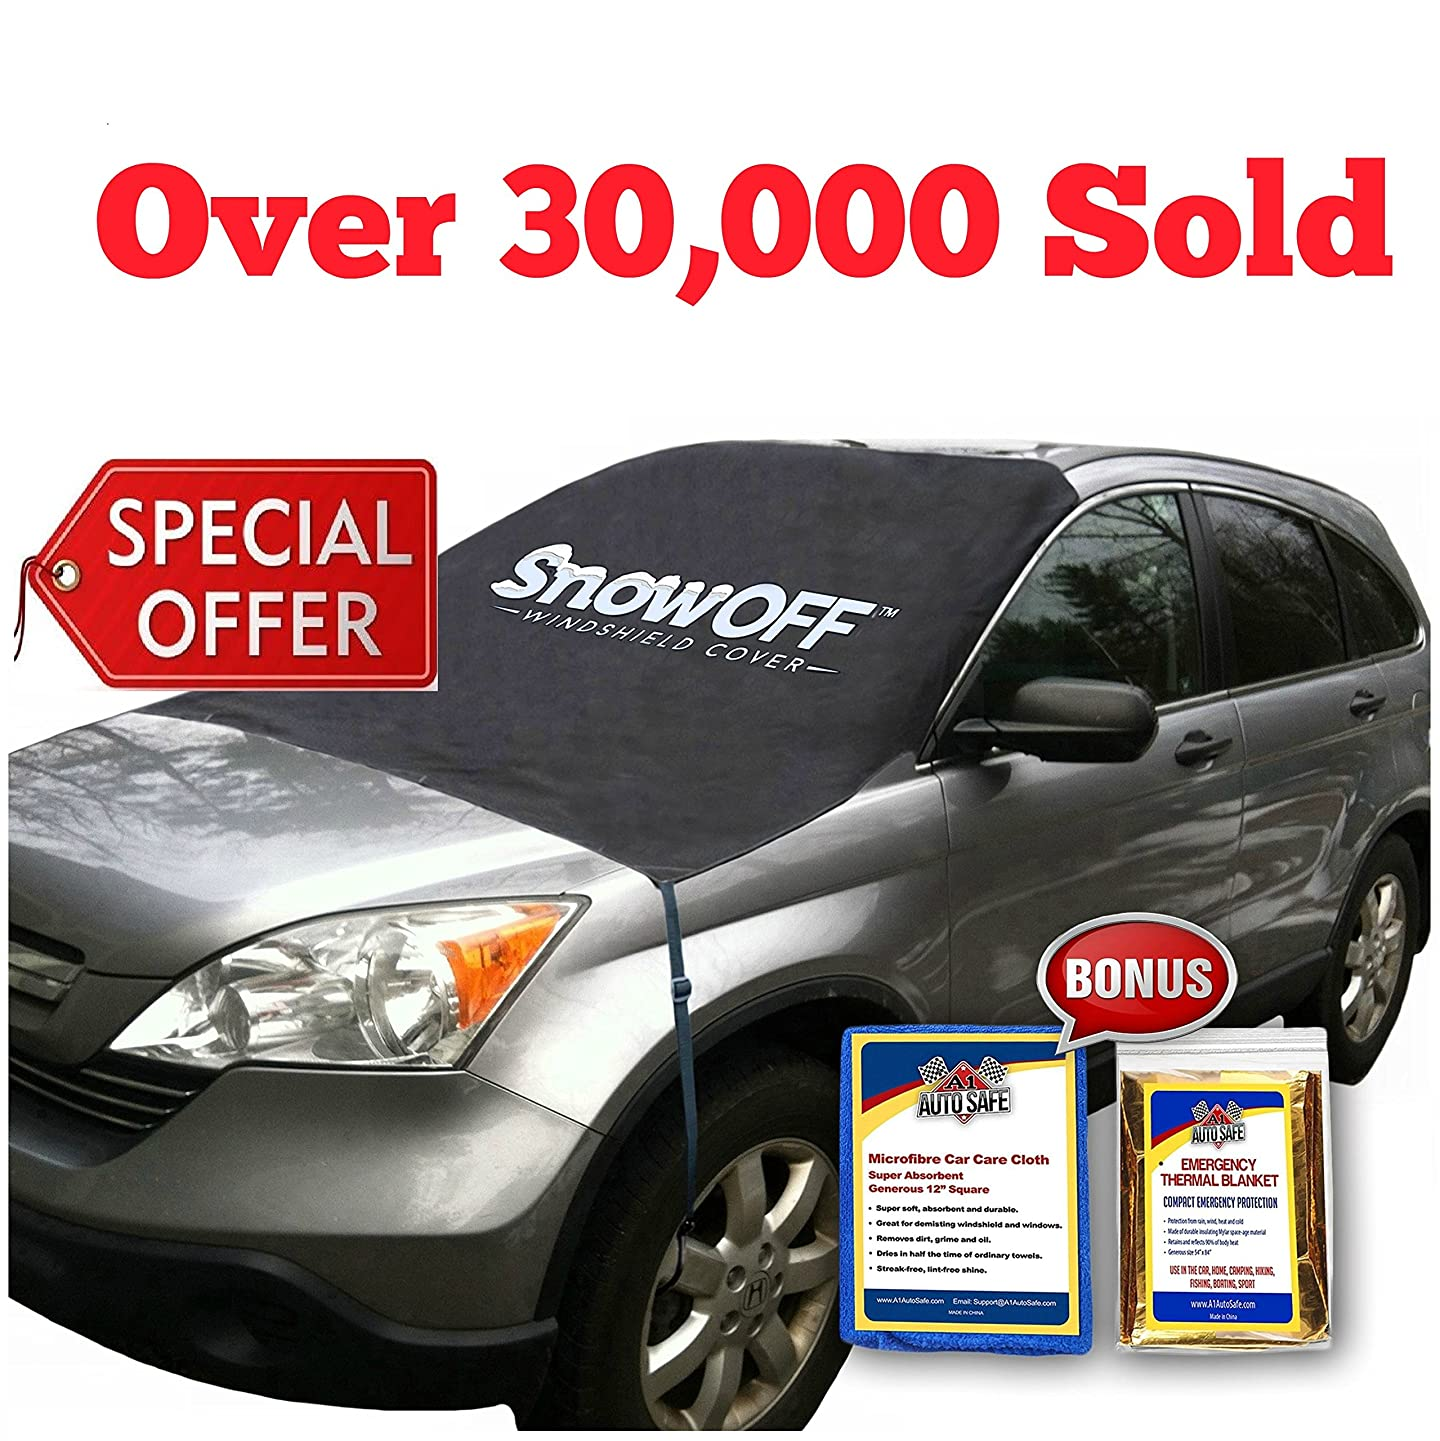 SnowOFF Extra Large Windshield Snow Ice Cover - FIT Any CAR, SUV Truck Van - Windproof Straps, Wings, Suction Cups, Magnets - Bonus Demist Cloth + Blanket - Winter Frost Automotive Hood Covers n479763451645464